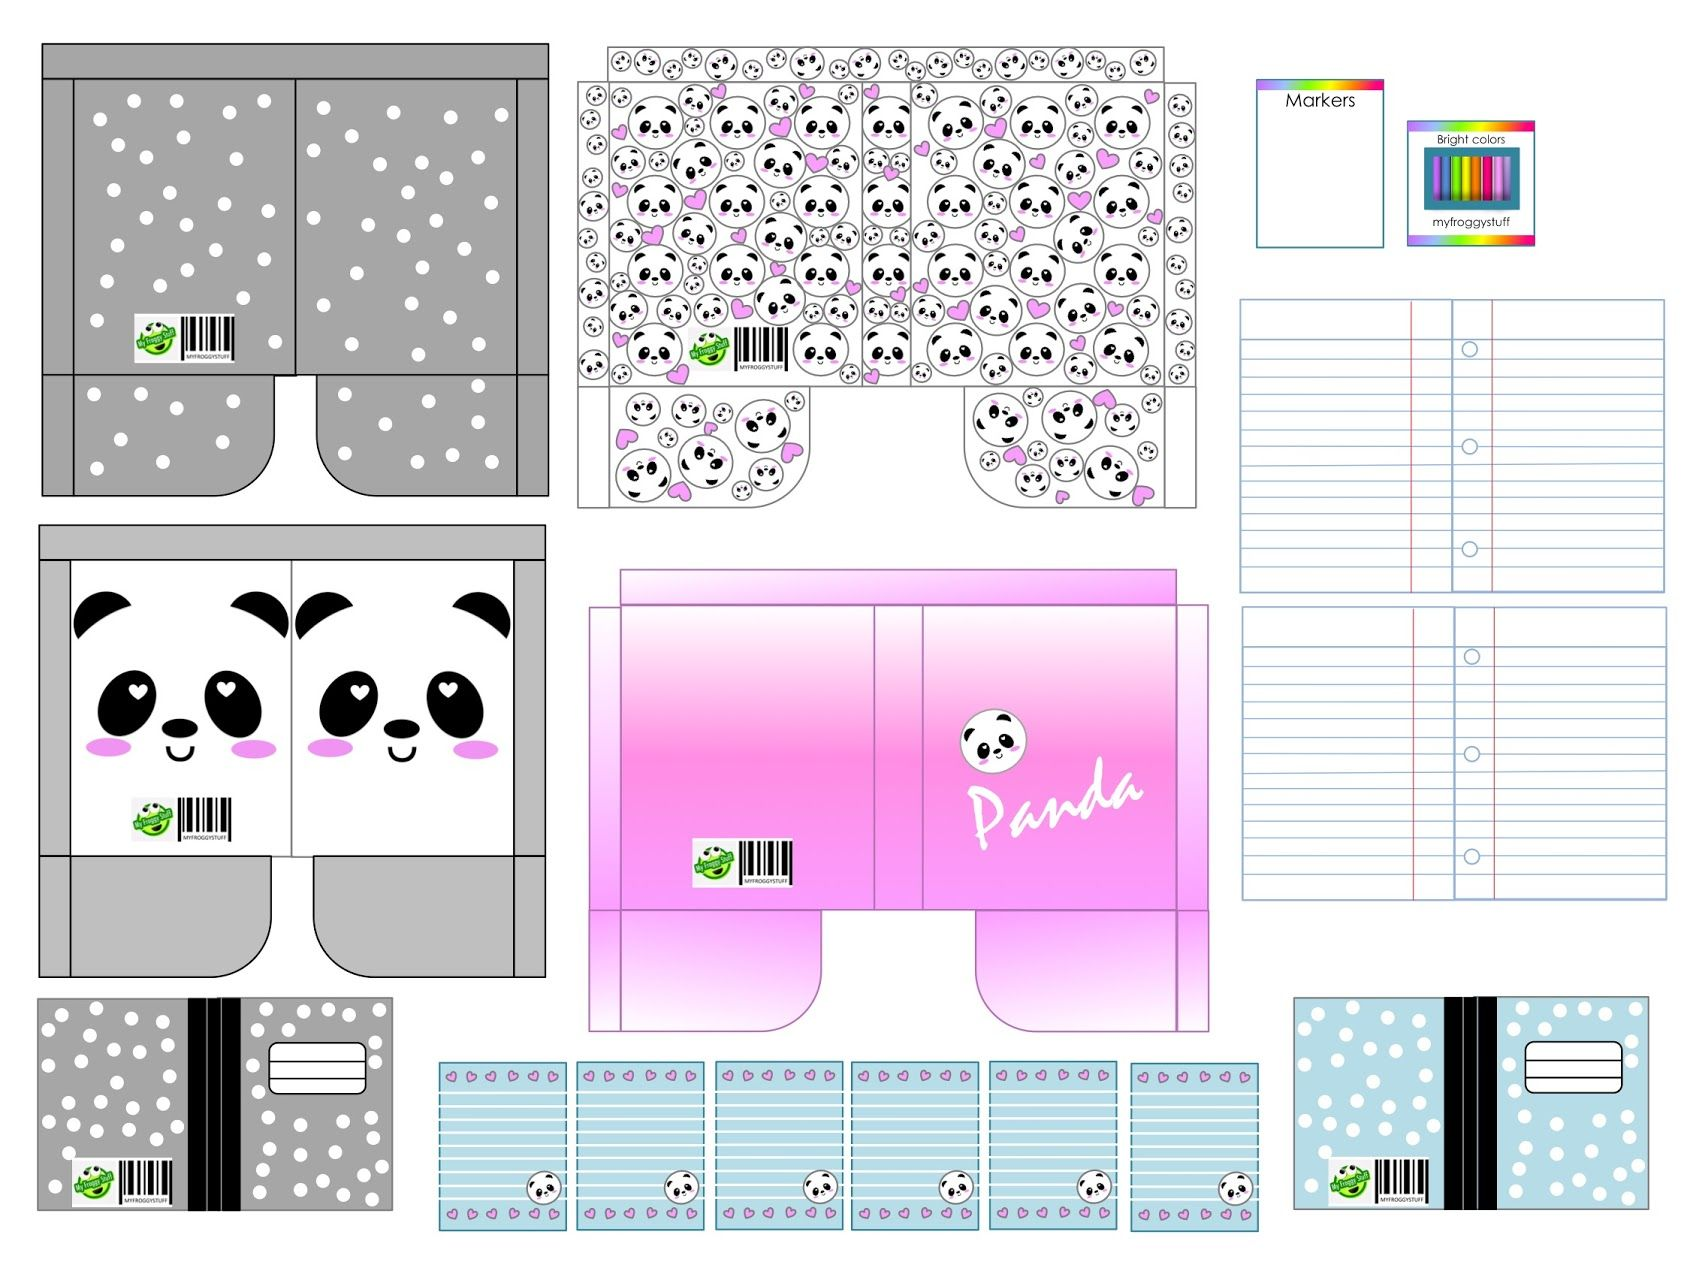 School Of Dolls My Froggy Stuff Printables Worksheet For For Printable Worksheets And Activities For Teachers Parents Tutors And Homeschool Families